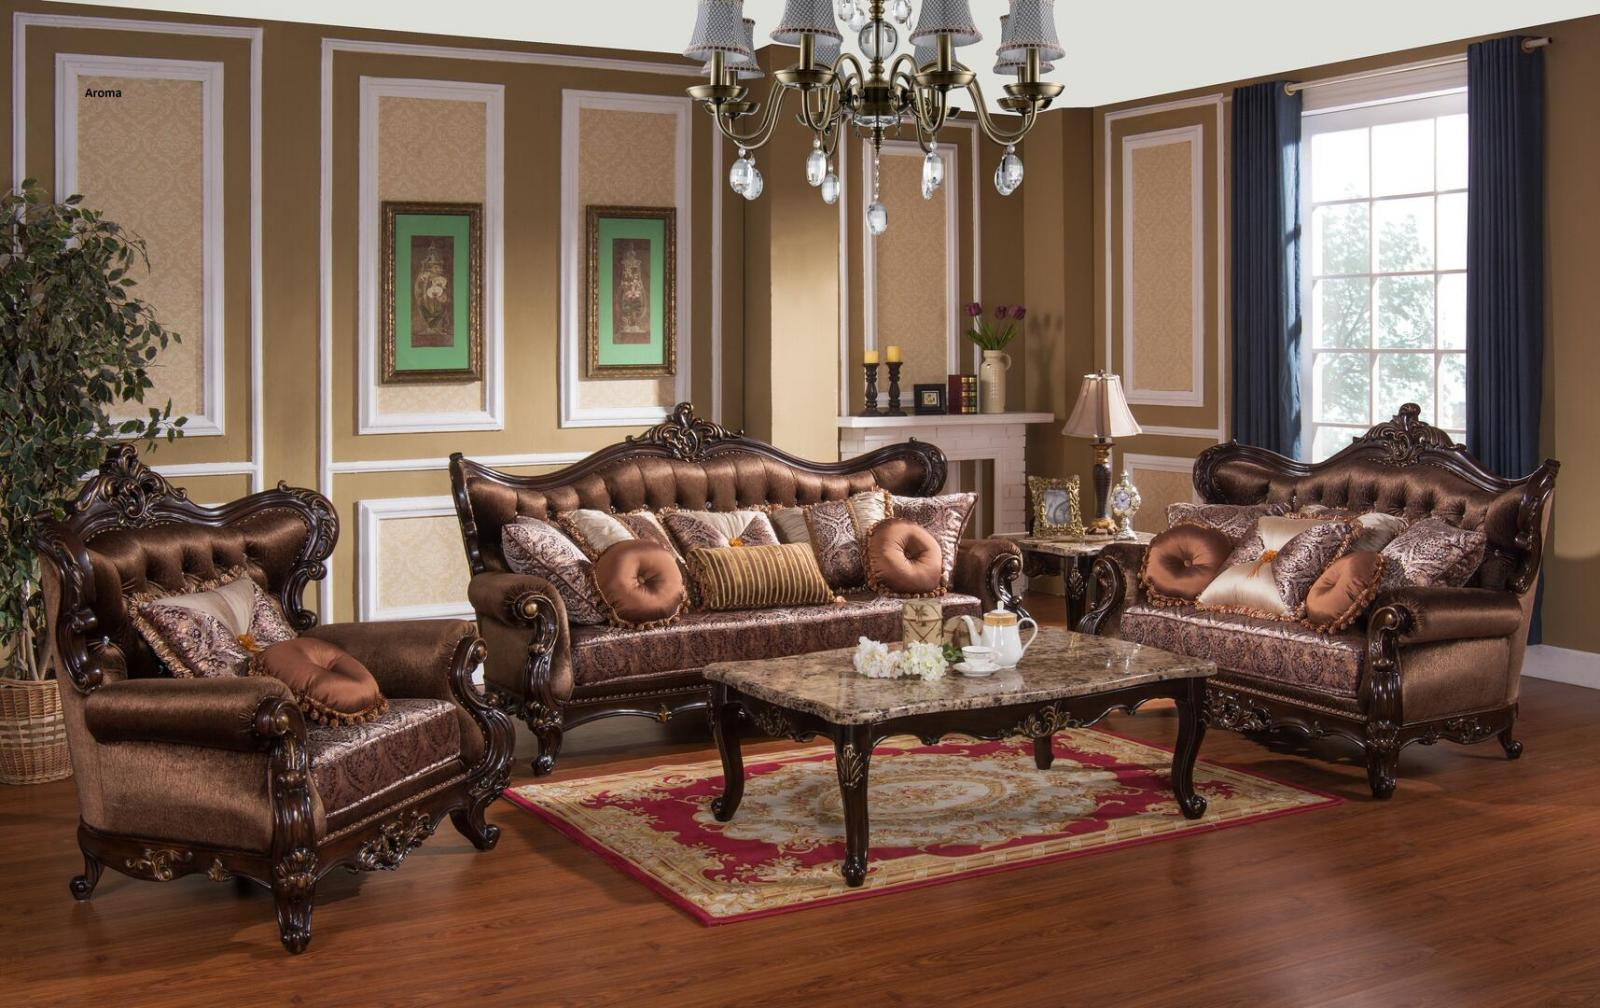 Traditional Cherry Fabric Sofa Loveseat Chair Coffee Table Two End Tables 6 pcs Cosmos Furniture Aroma-Set-6